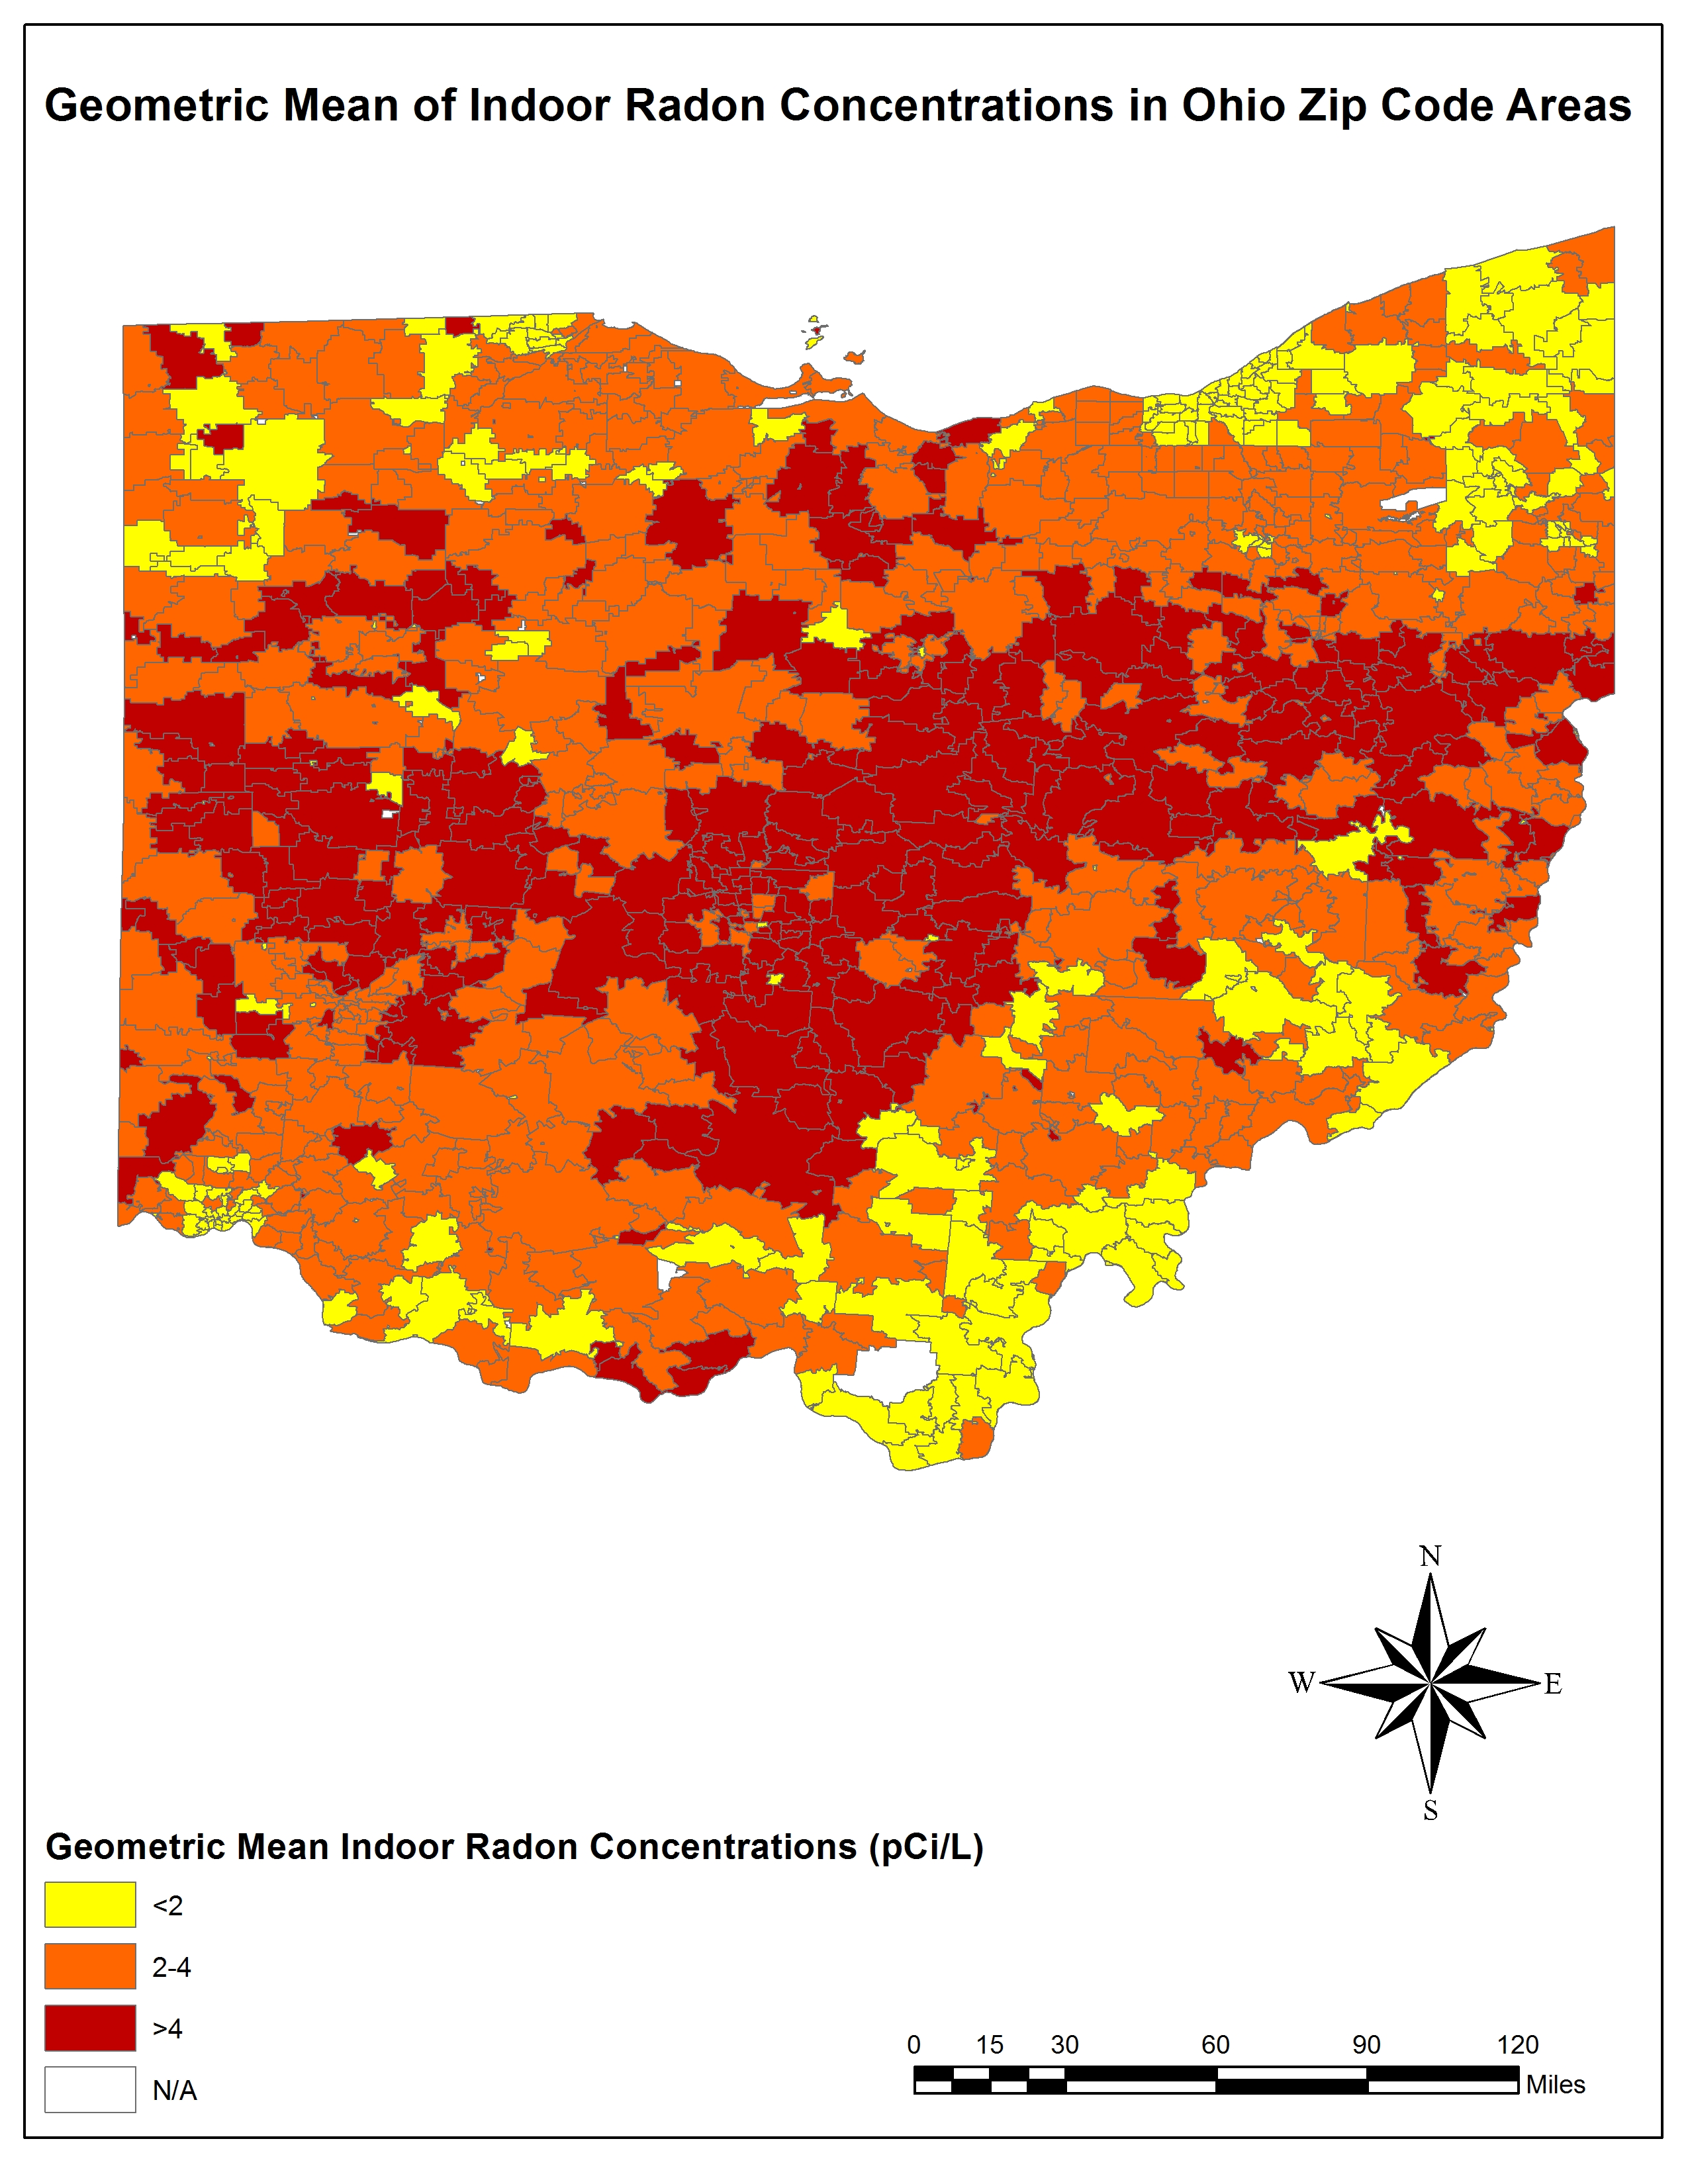 Geometric Mean Indoor Radon Concentrations in Ohio Zip Code ... on oh county map, ohio co map, akron ohio map, ohio zipcode, ohio usa map, city map, columbus ohio map, cincinnati suburbs map, zip codes by state map, ohio location on map, ohio hilliard subdivisions map, northern ohio cities map, ohio counties, ohio pa map, cleveland zip map, ohio town map, detailed ohio road map, ohio on us map, ohio county map, ohio precinct map,